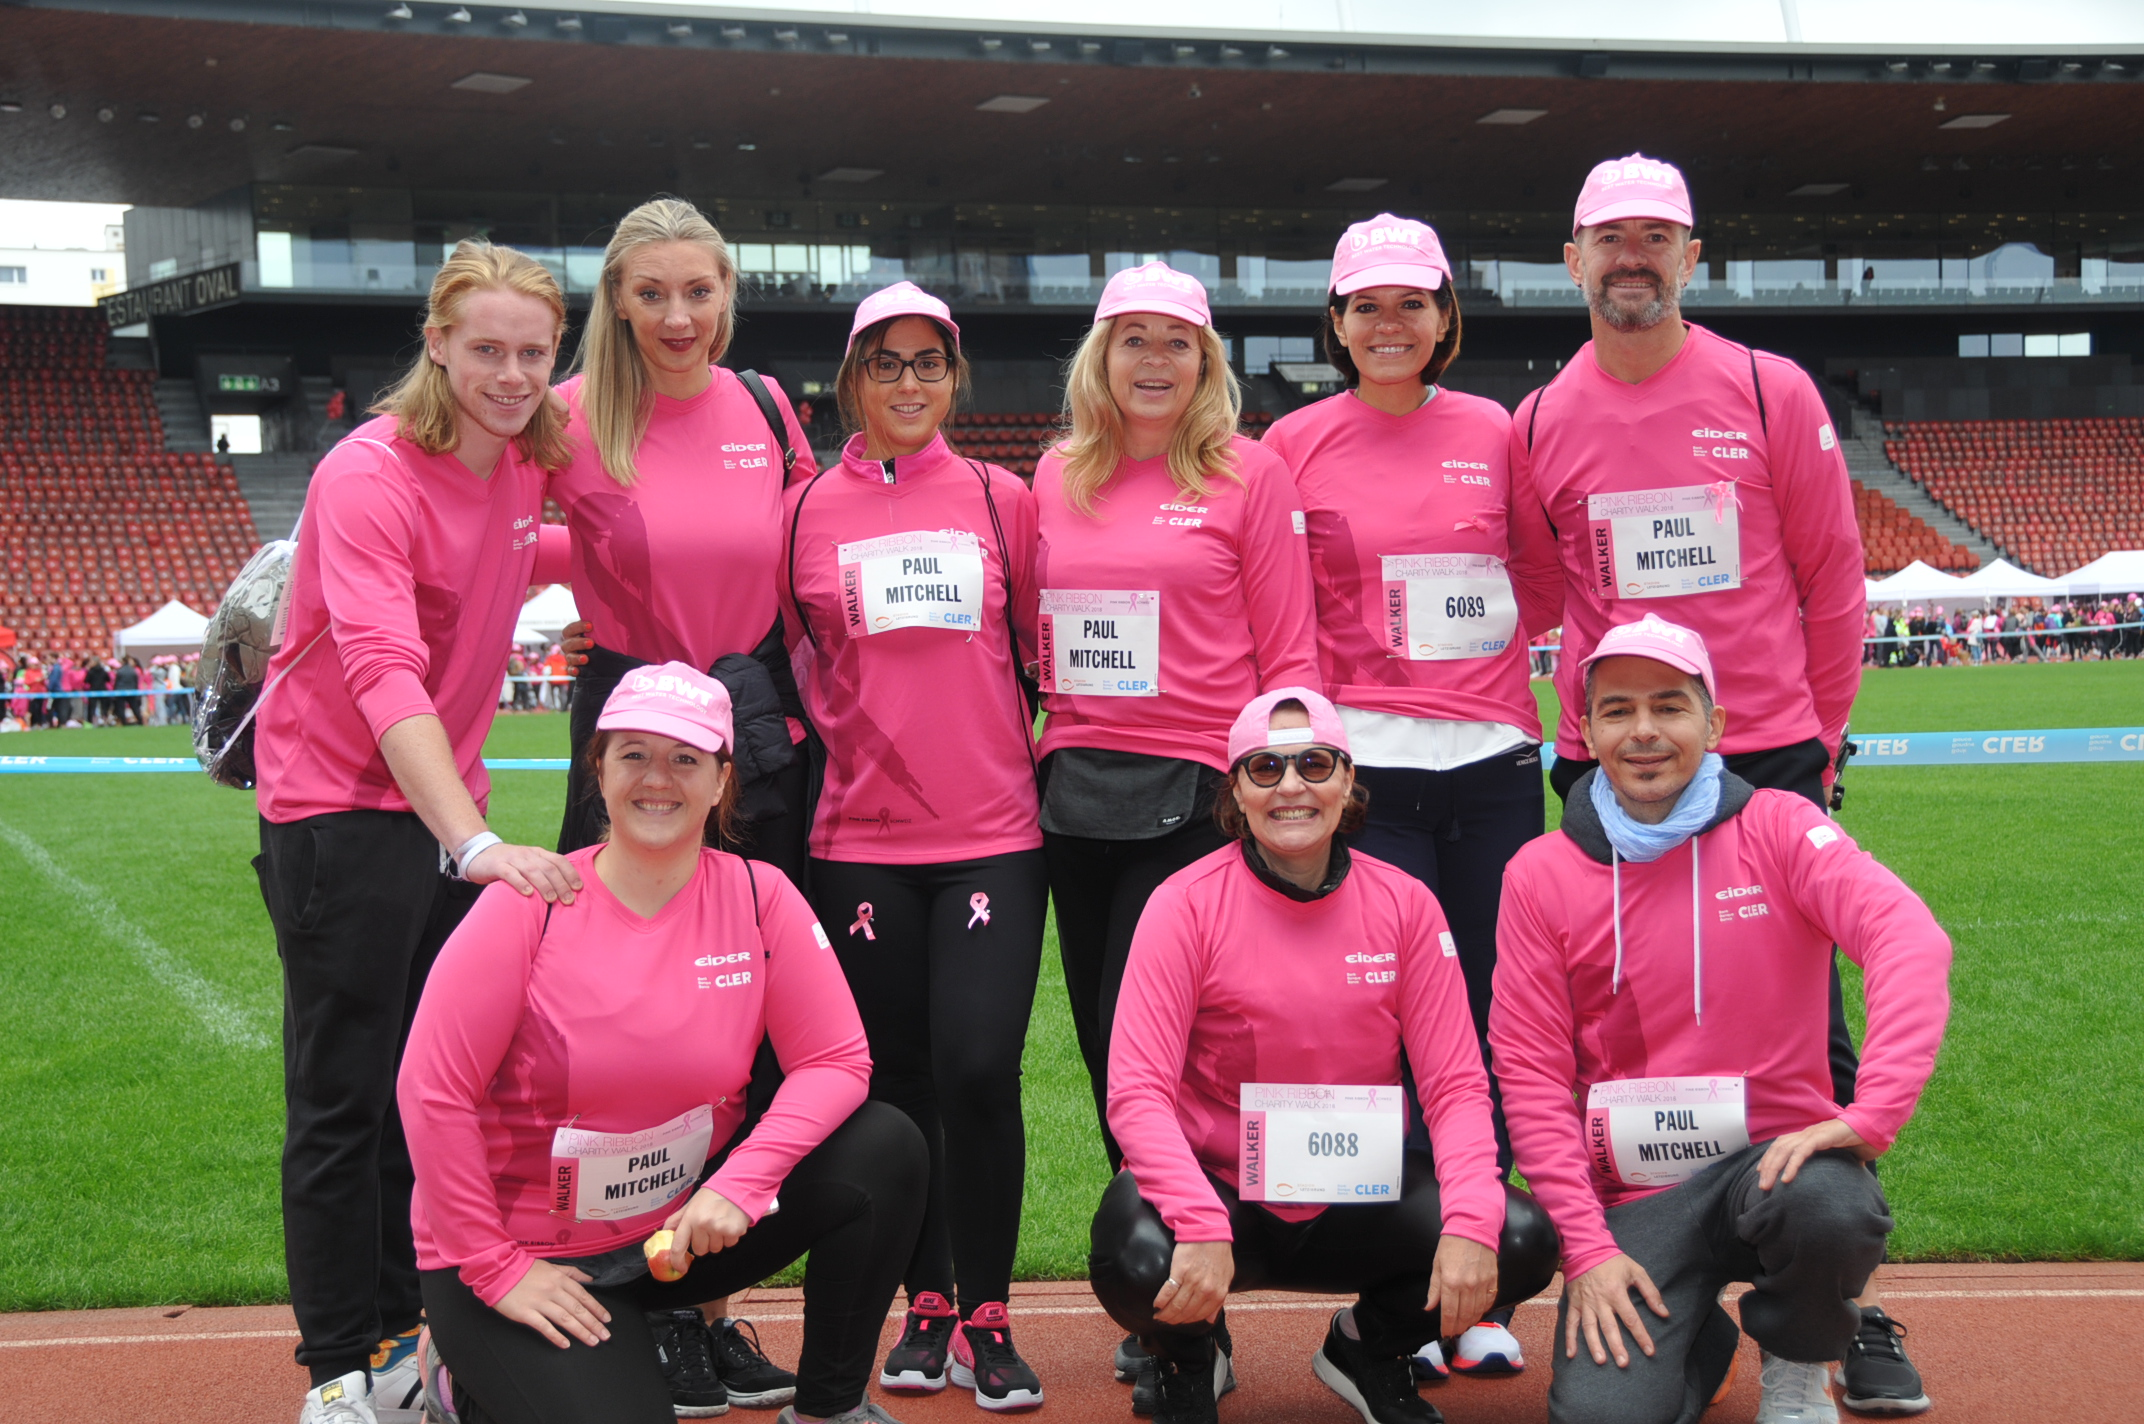 Wir kämpfen gegen Brustkrebs - PM Care Systems am Pink Ribbon Charity Walk